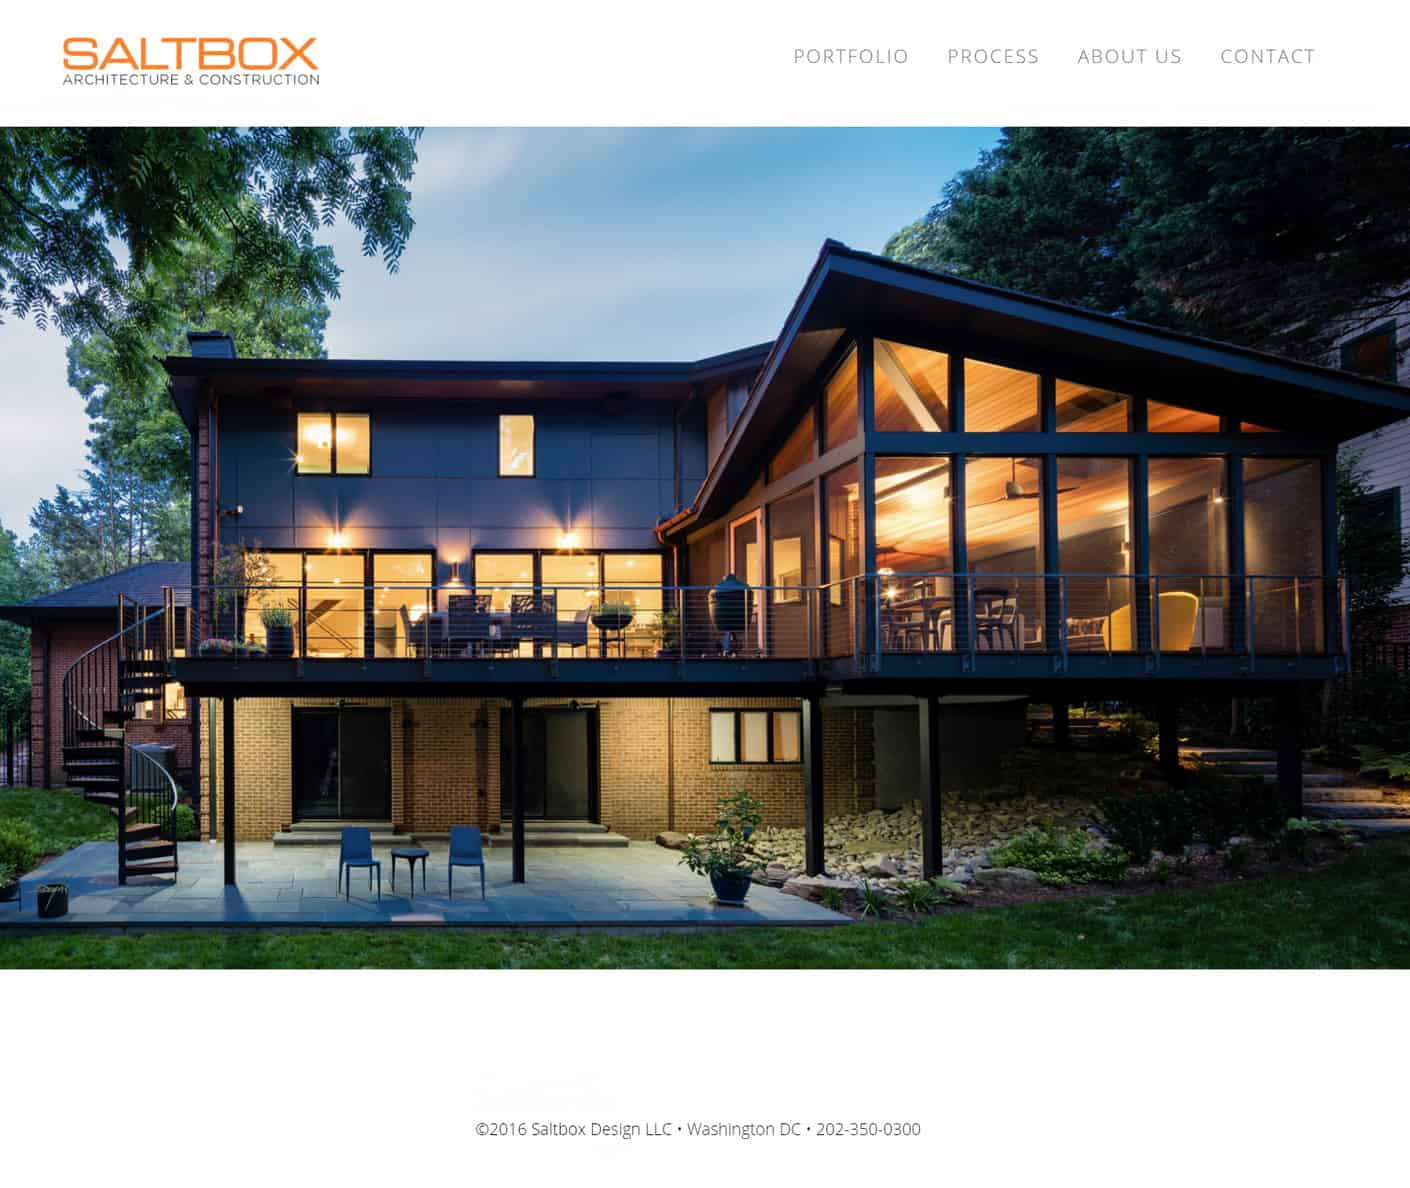 Saltbox Design website